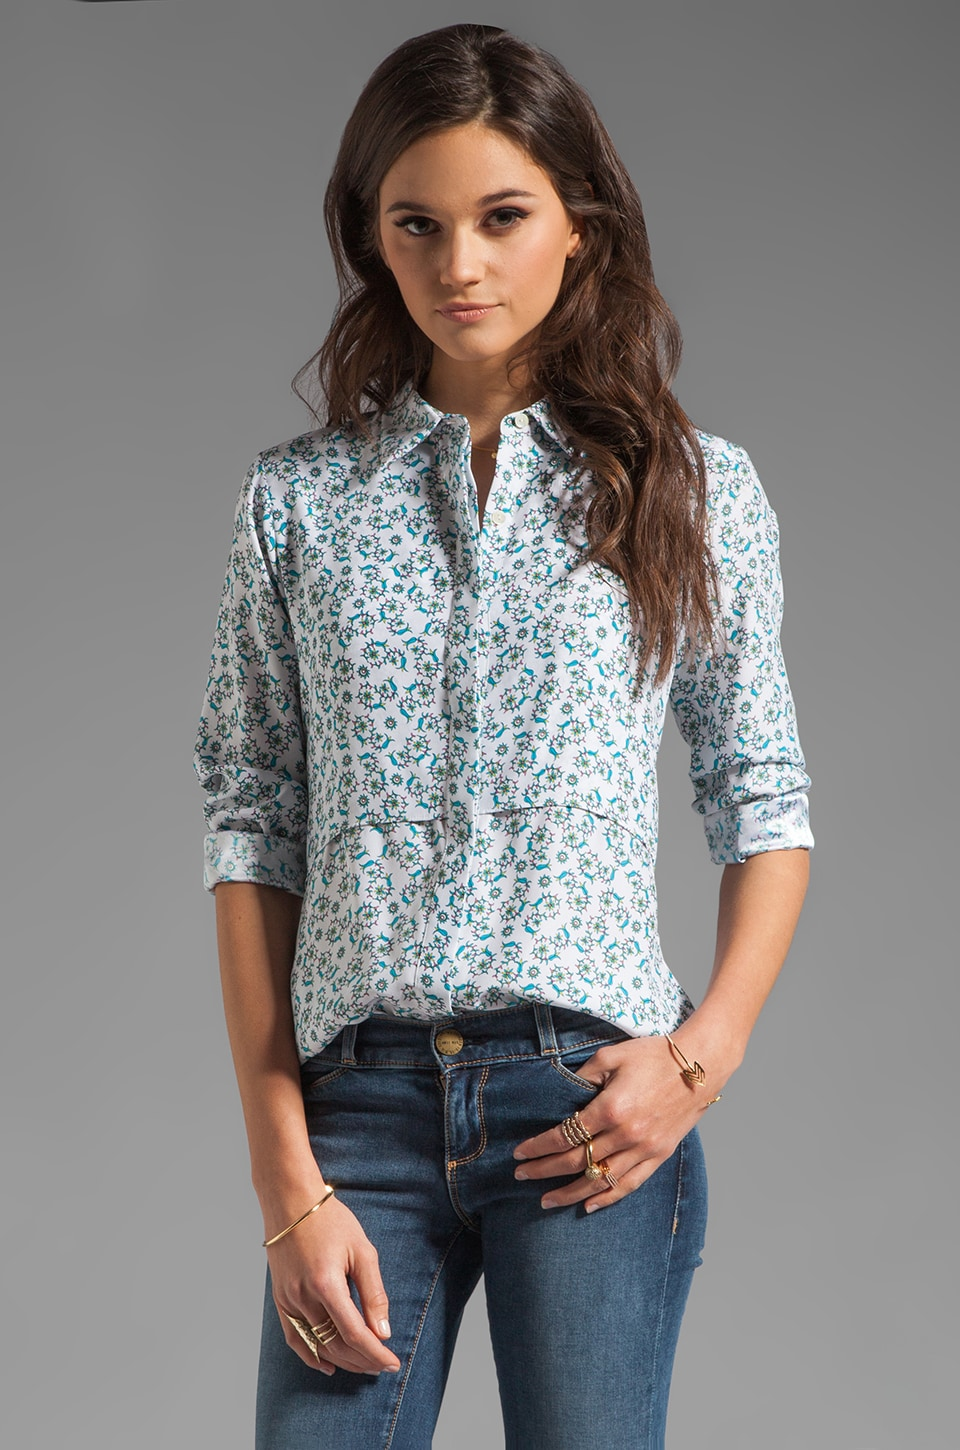 Theory Pondicherry Rosita Silk Blouse in Aqua Multi